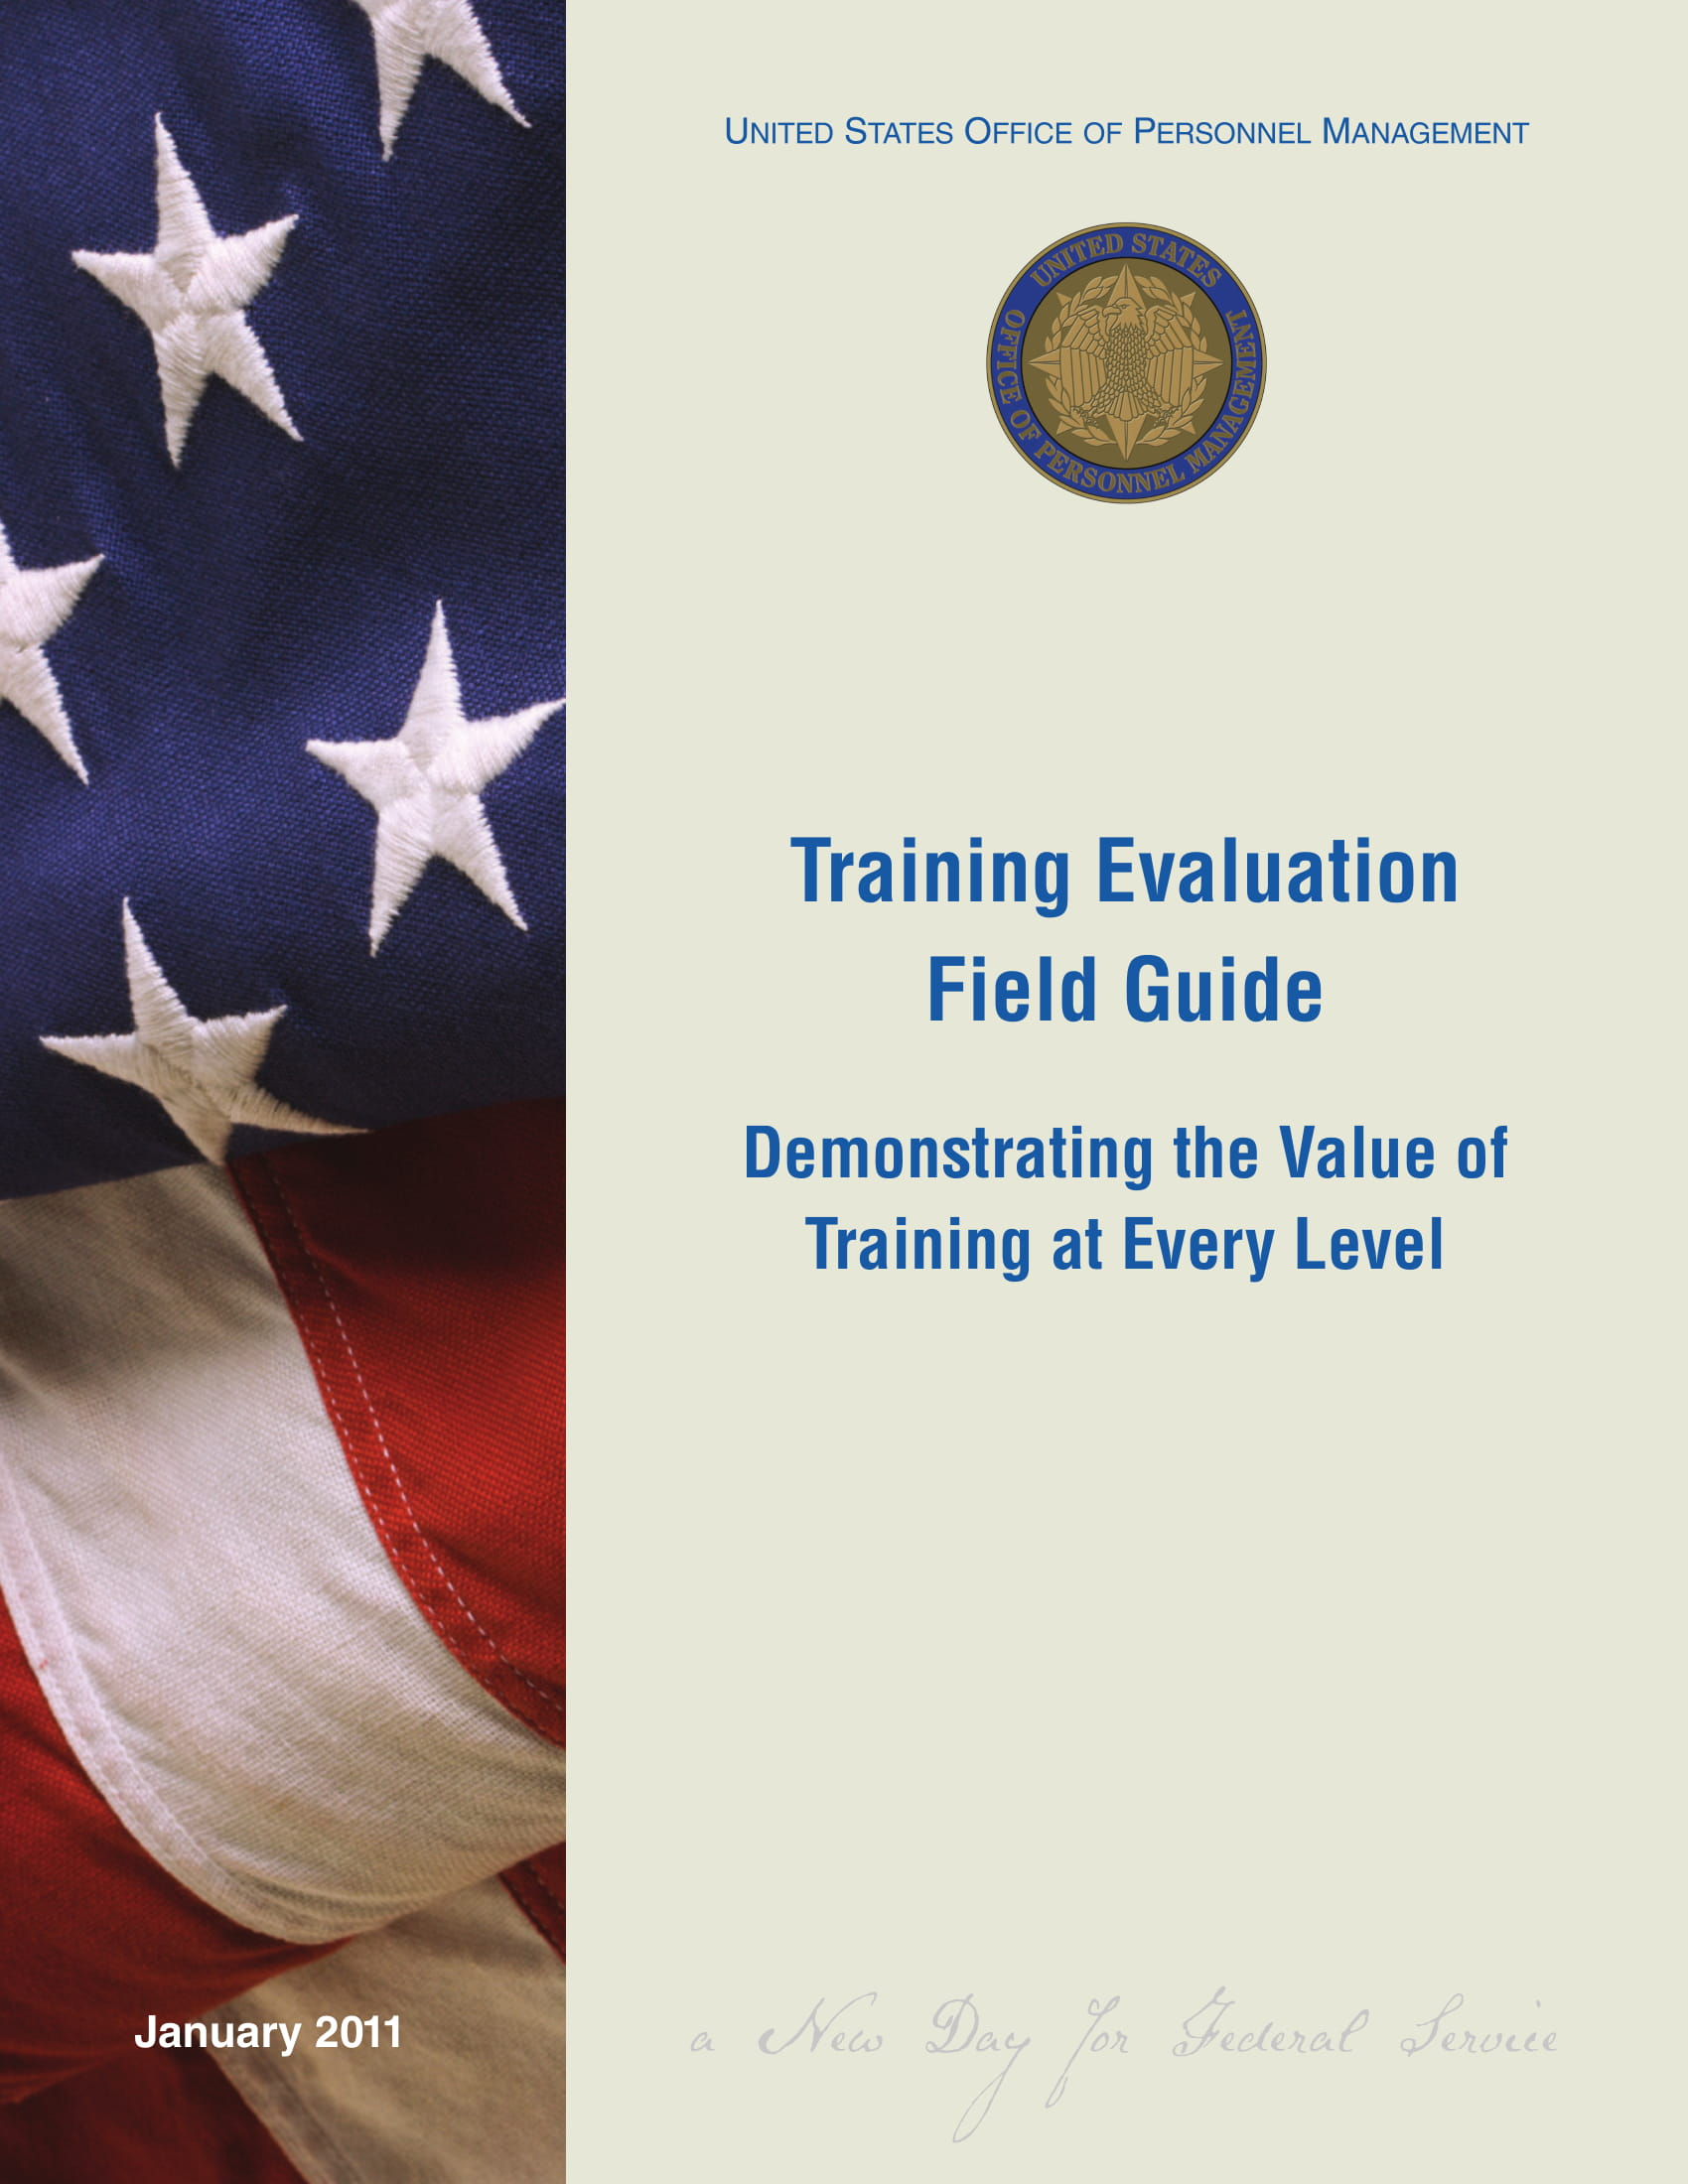 training evaluation field guide 001